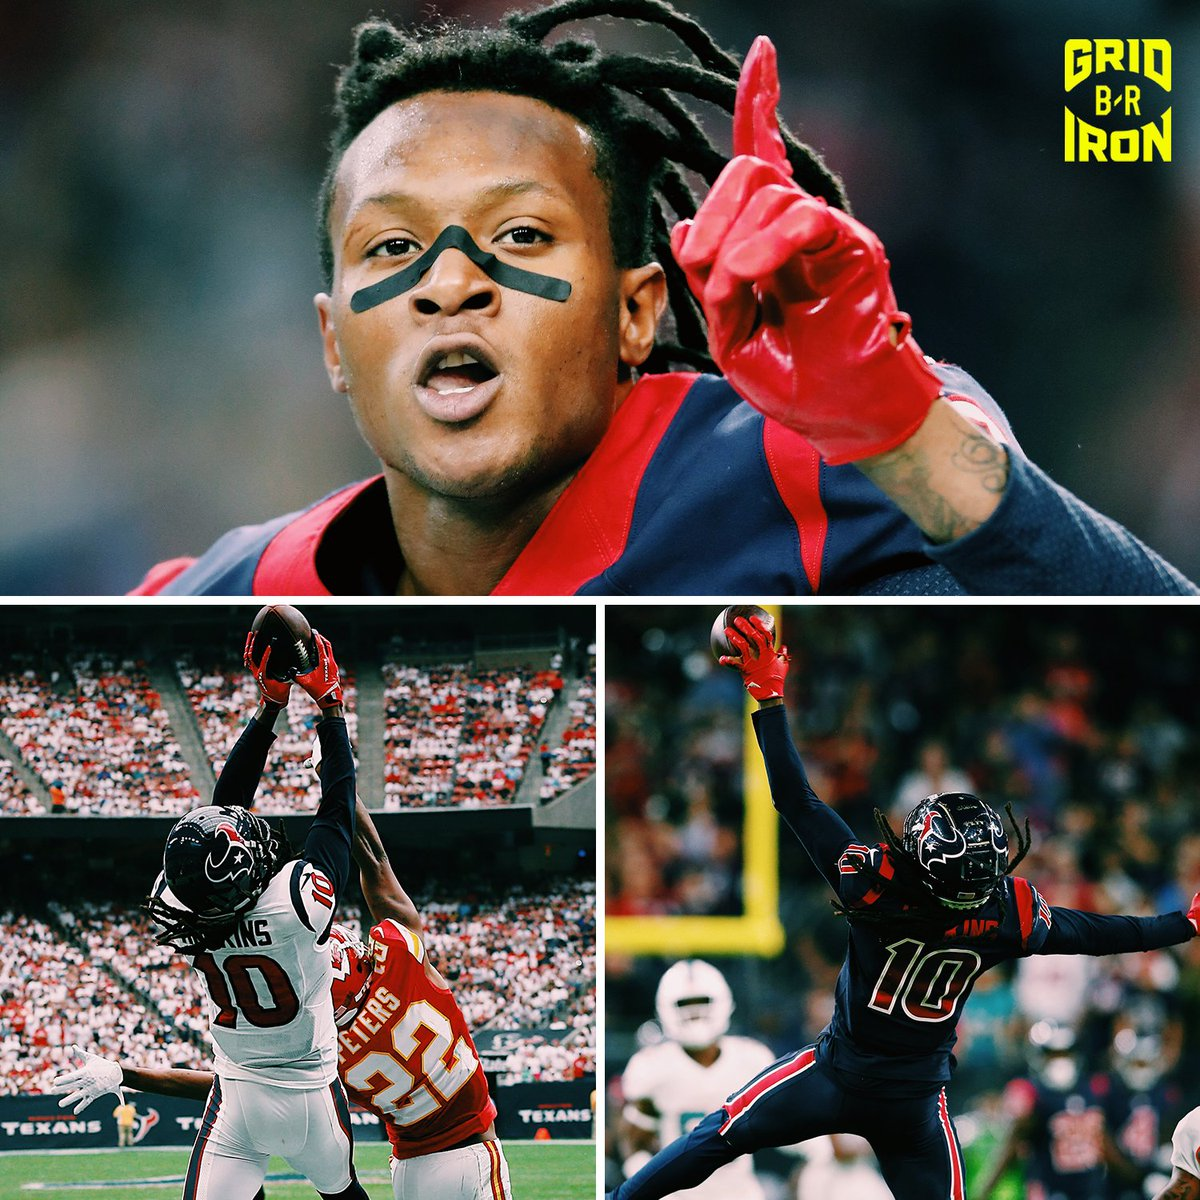 .@DeAndreHopkins is the No. 1 offensive player on #Madden20 🎮  Best in the game on: ➖ Overall (one of four 99s) ➖ Catching (99) ➖ Jumping (99) ➖ Spectacular Catch (99) ➖ Catch In Traffic (99) ➖ Release (99)  (via @EAMaddenNFL) https://t.co/8V0XRAQ0OQ